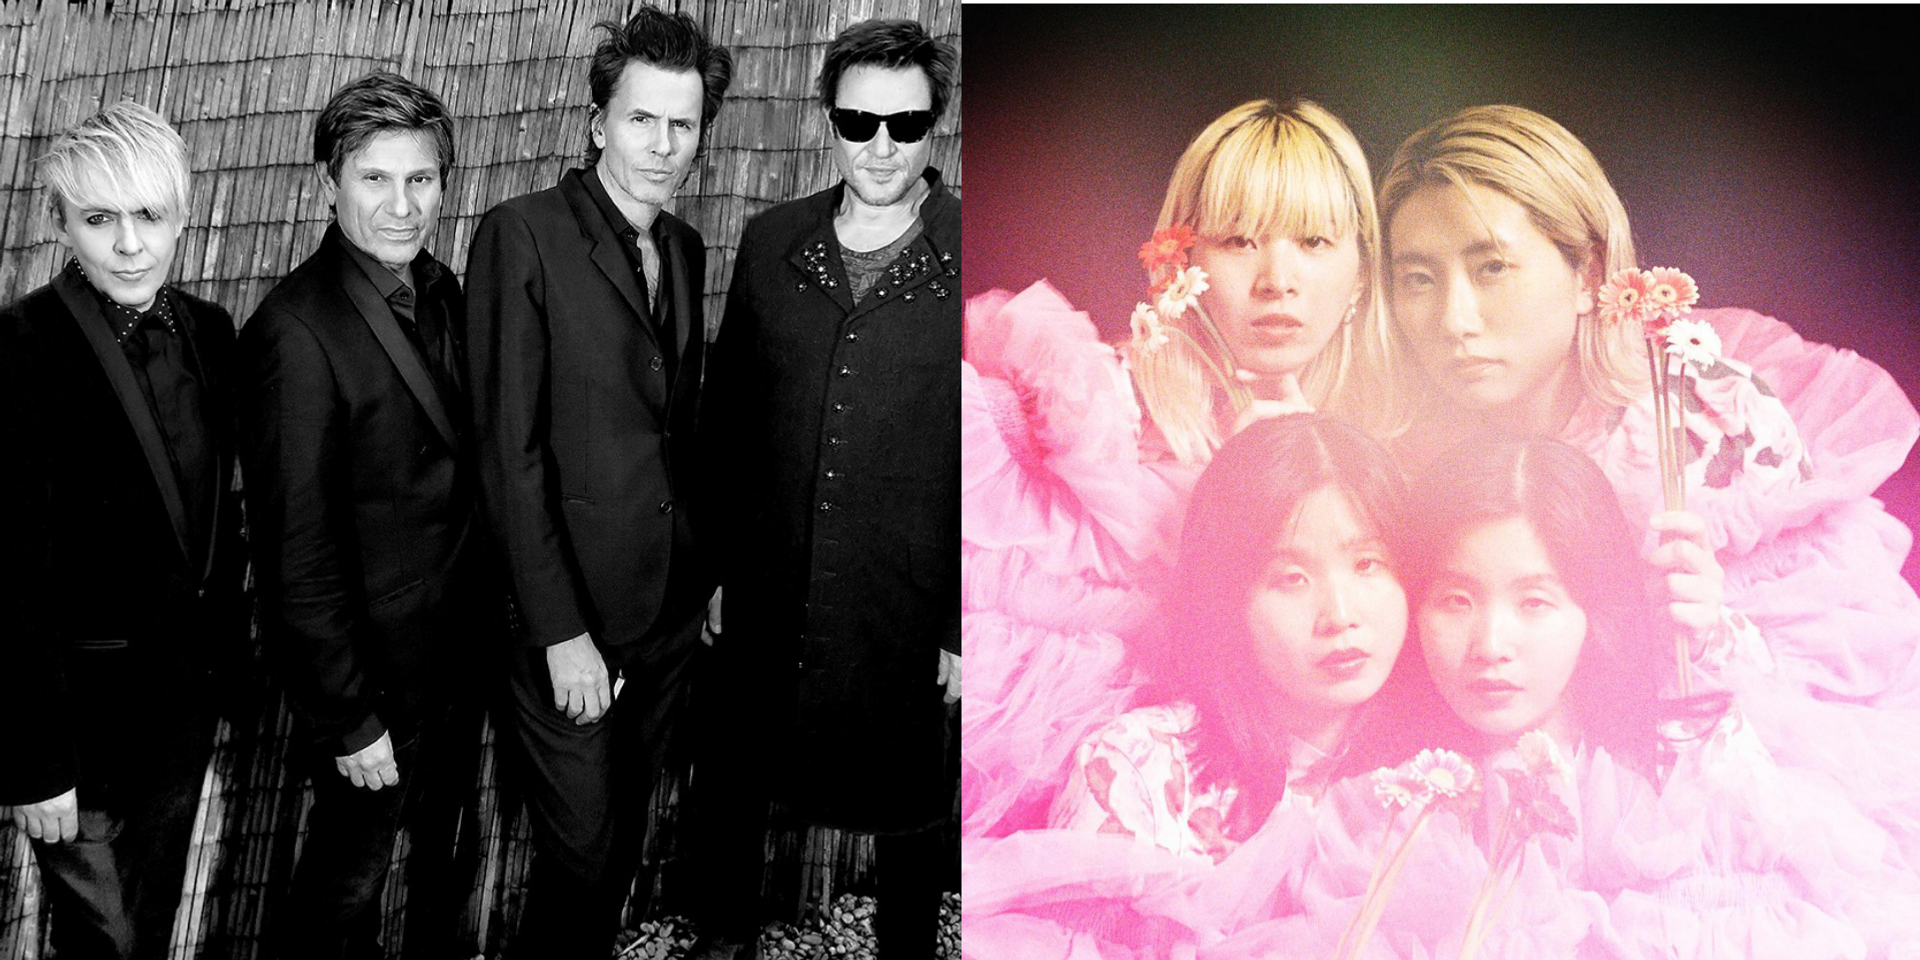 Duran Duran and Japanese band CHAI team up for new single titled 'More Joy' – listen